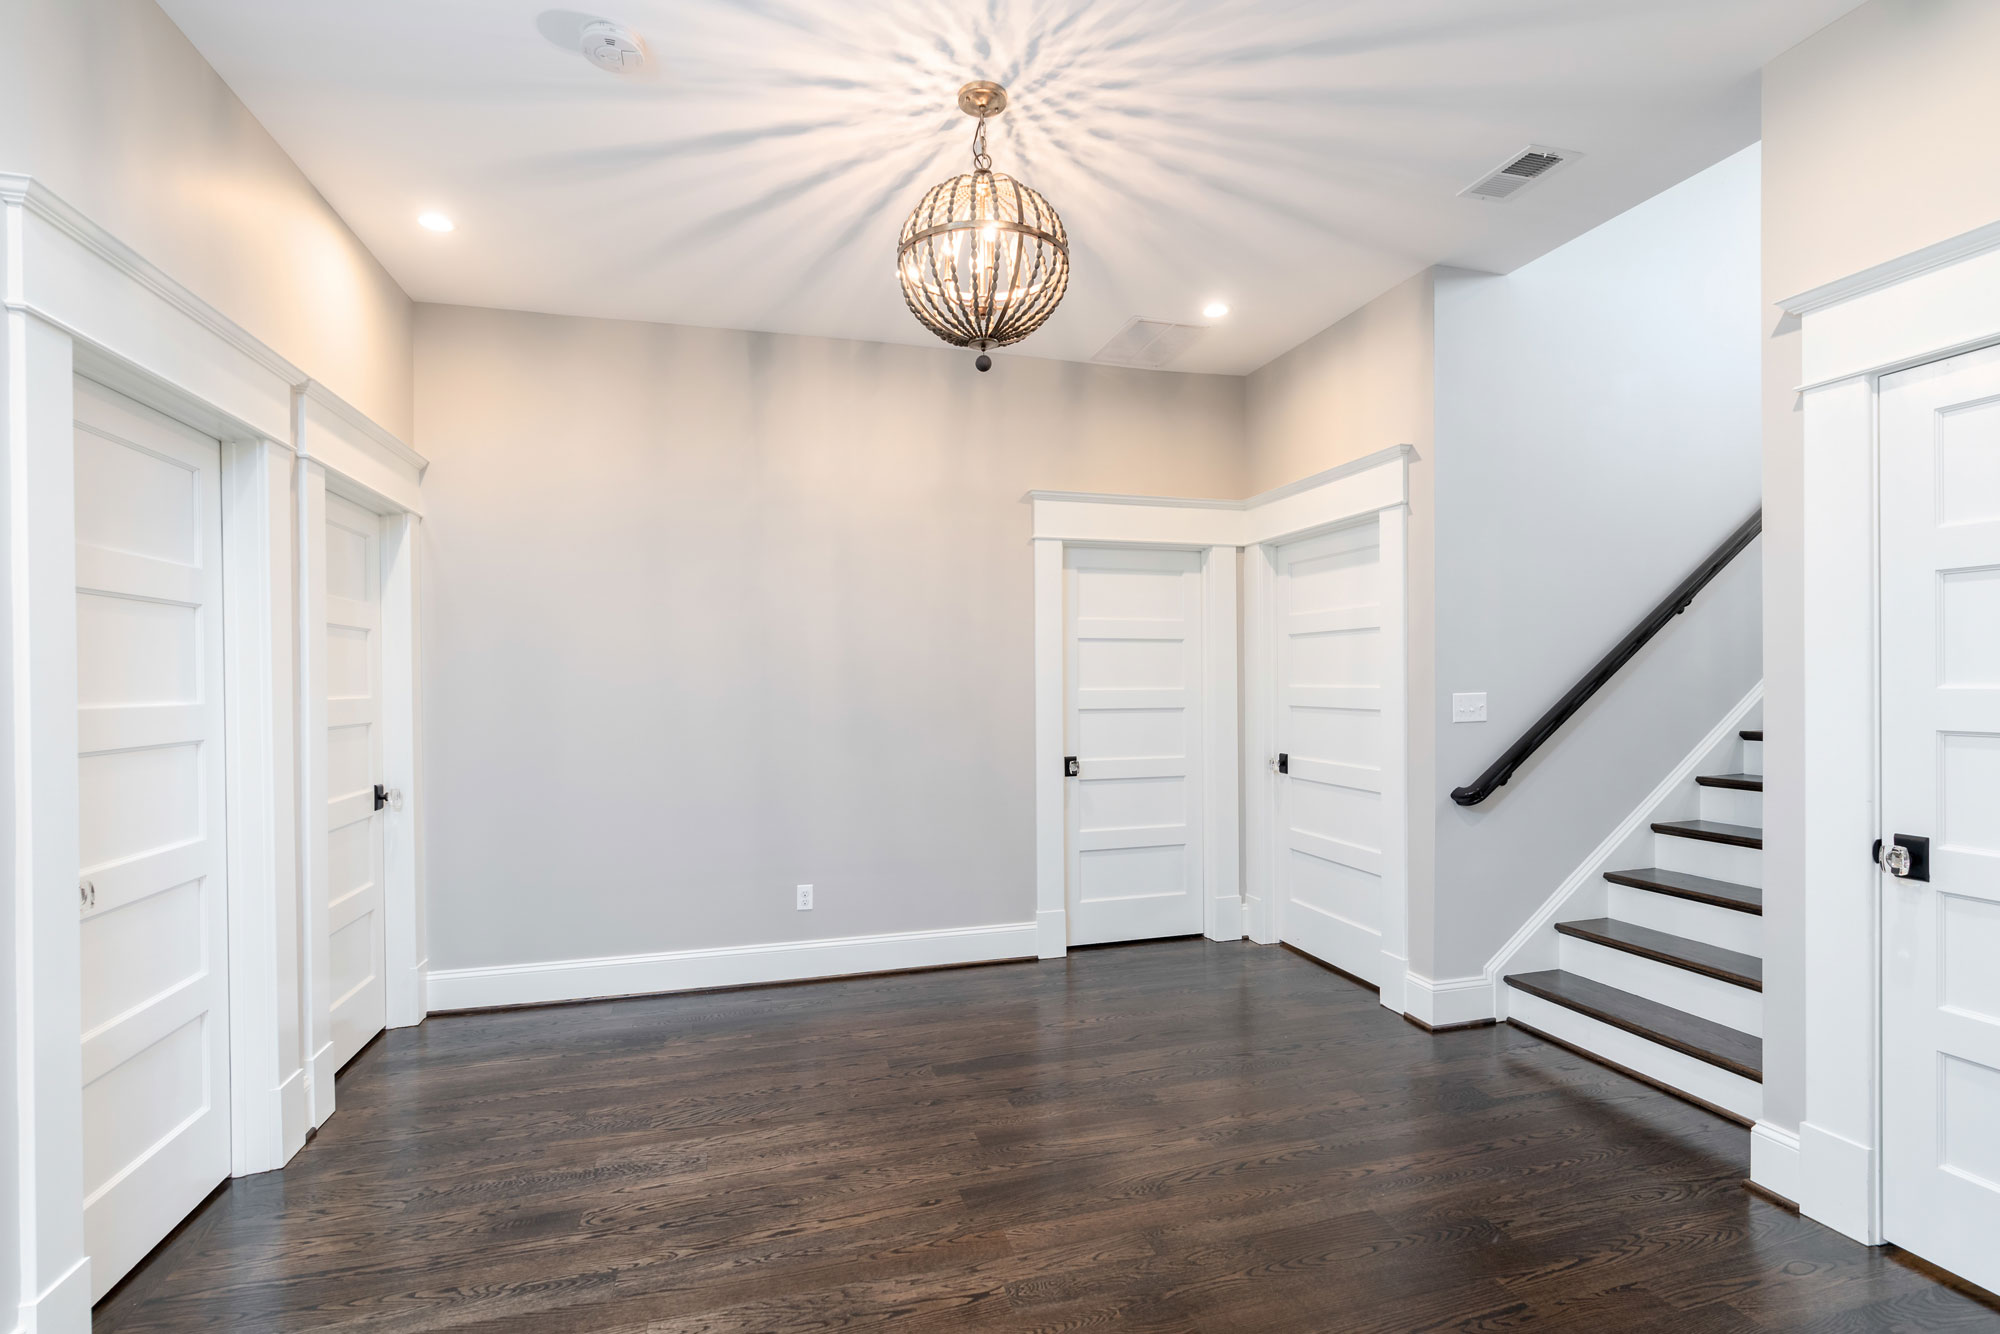 Hardwood floors on the basement landing.